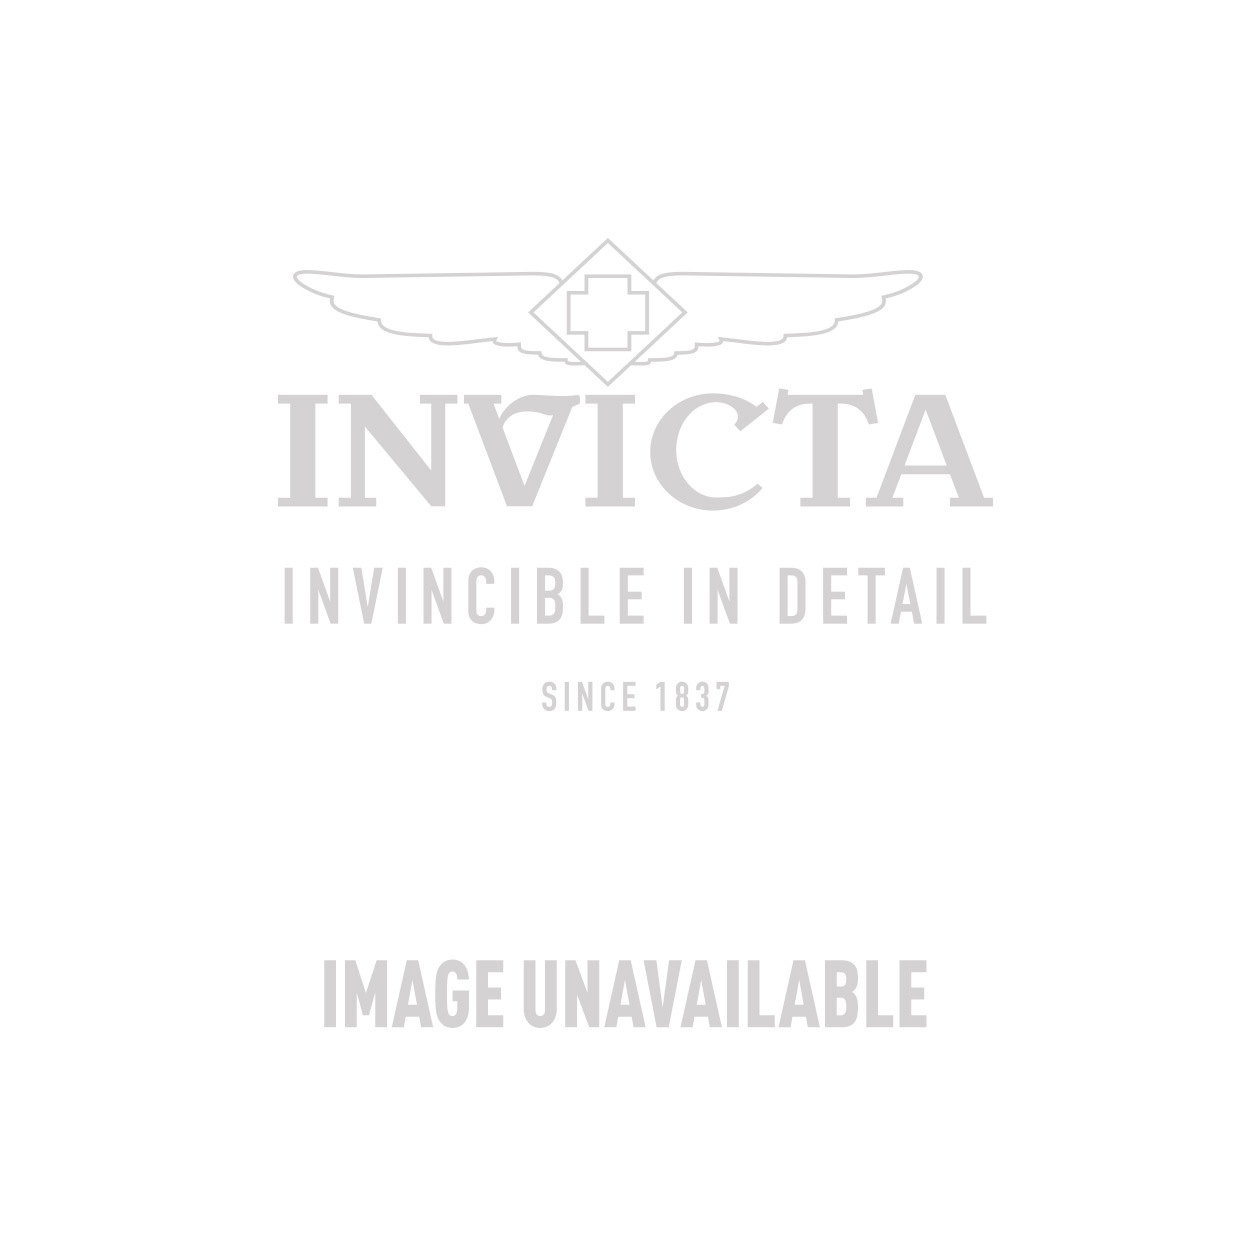 Invicta Angel Swiss Movement Quartz Watch - Rose Gold, Stainless Steel case with Steel, Rose Gold tone Stainless Steel band - Model 16063